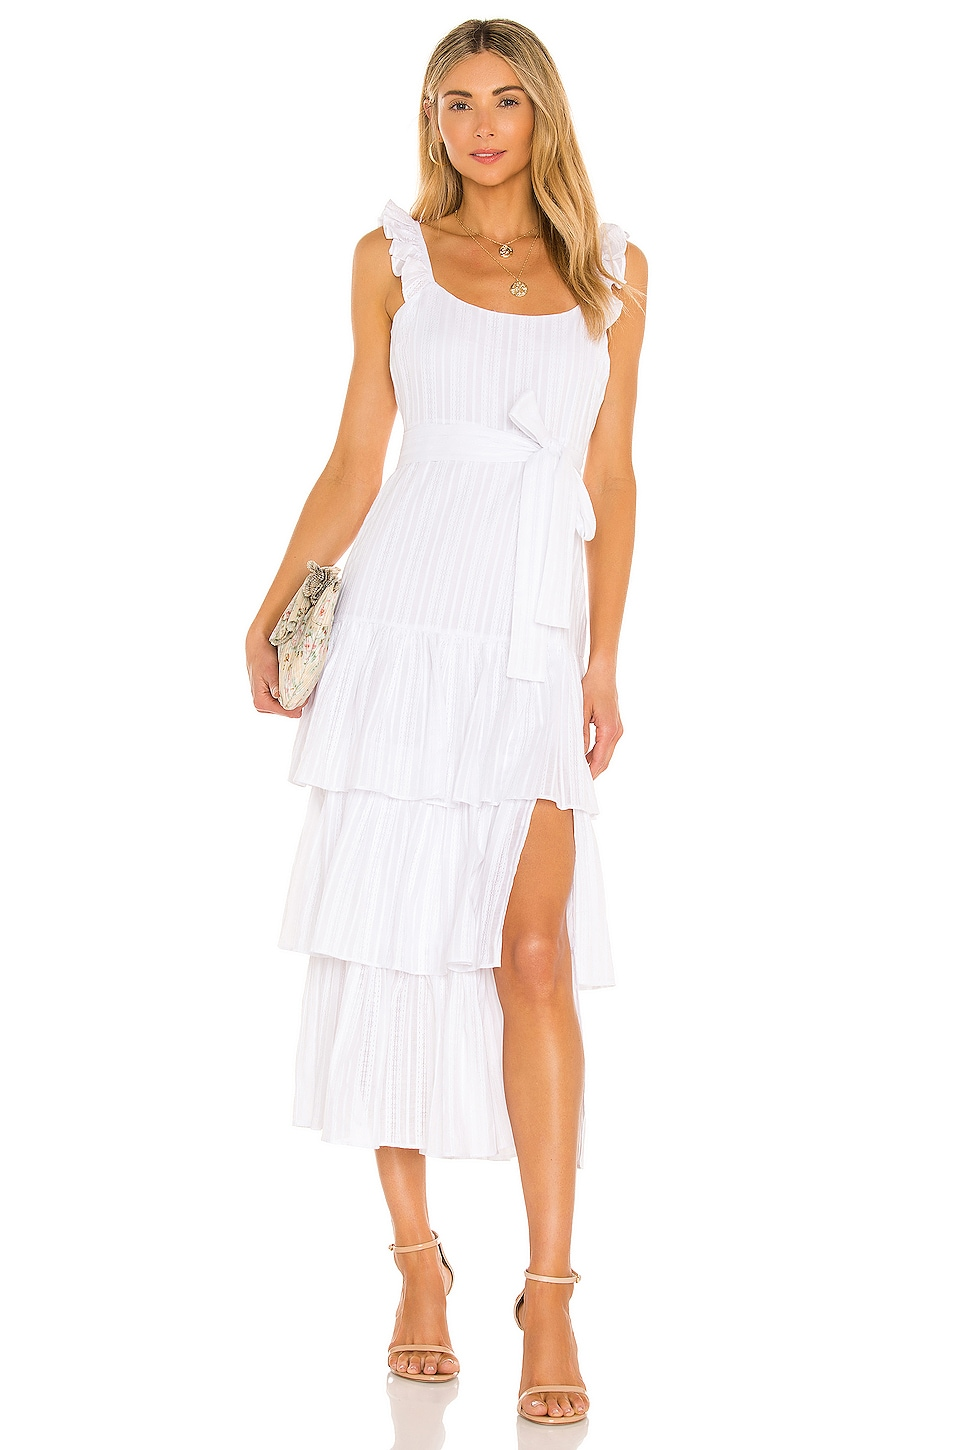 LIKELY Charlotte Dress in White